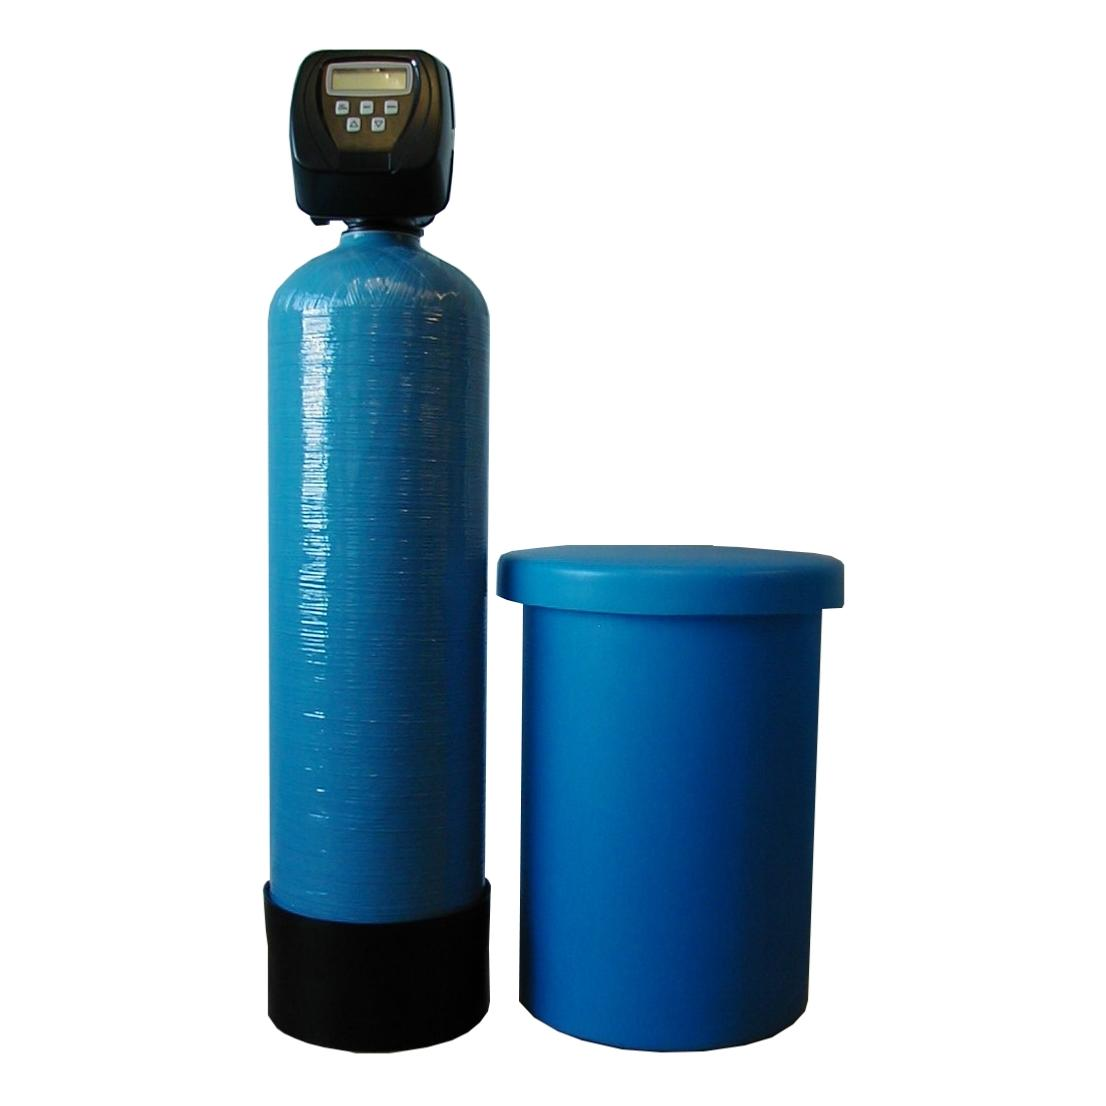 Simplex Metered Commercial Water Softener 200-litre (1.25inch) Flow 7.7m3/HR Capacity 33 m3